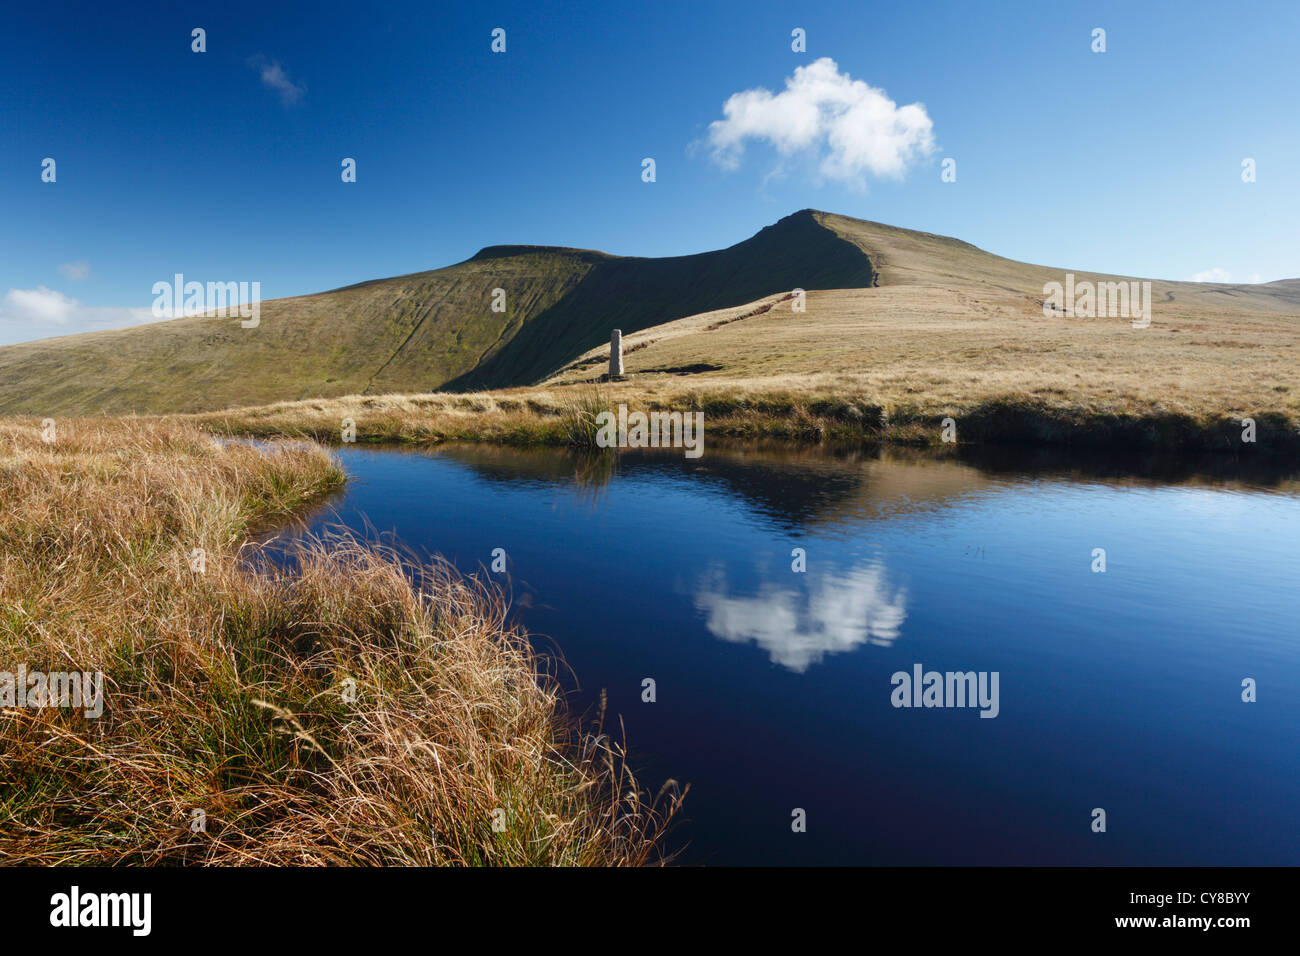 Pen y Fan & Corn Du from near Tommy Jones' Obelisk. Brecon Beacons National Park, Powys, Wales, UK. - Stock Image